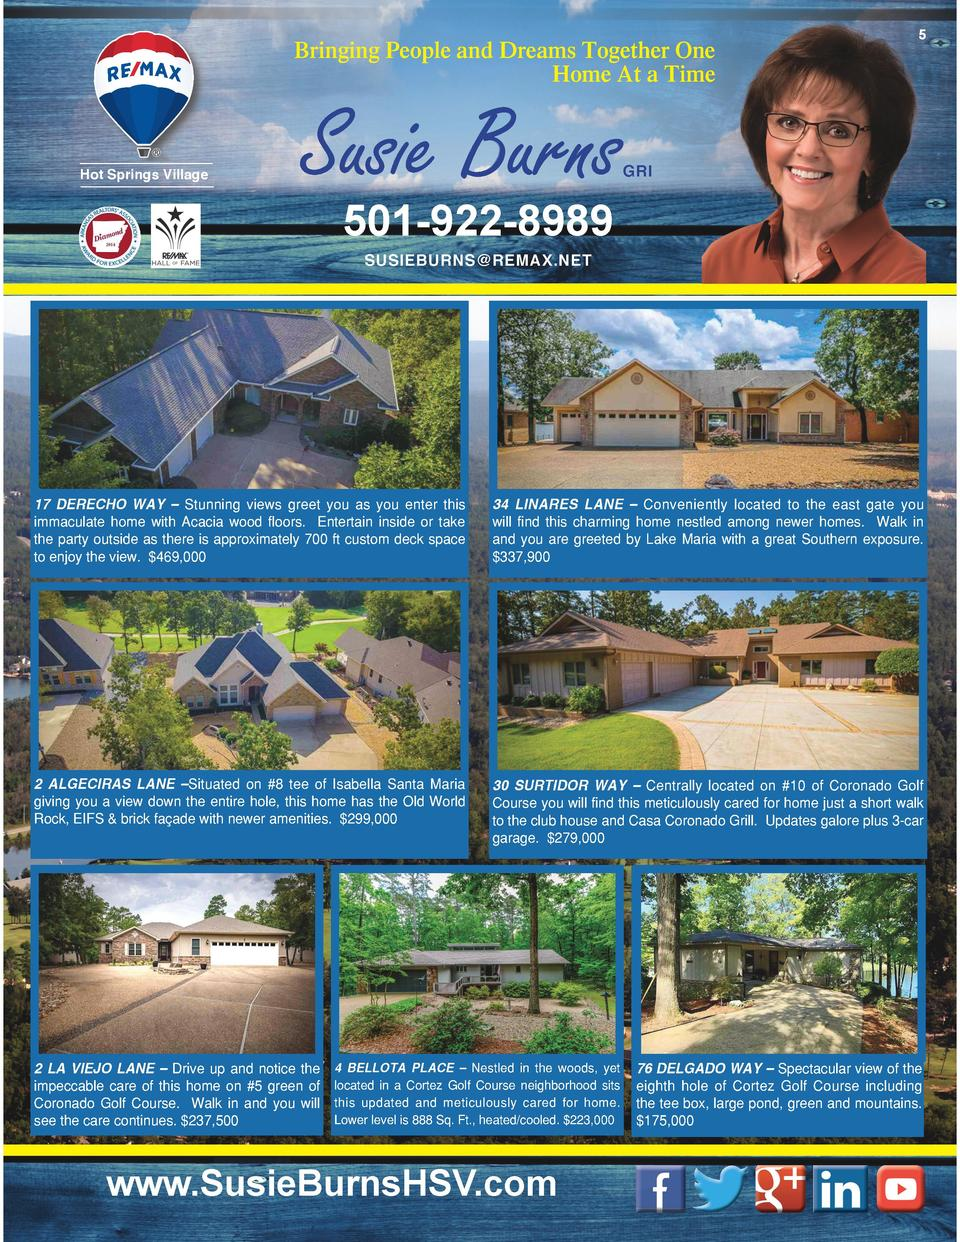 Bringing People and Dreams Together One Home At a Time  Hot Springs Village  Susie Burns  5  GRI  501-922-8989 SUSIEBURNS ...